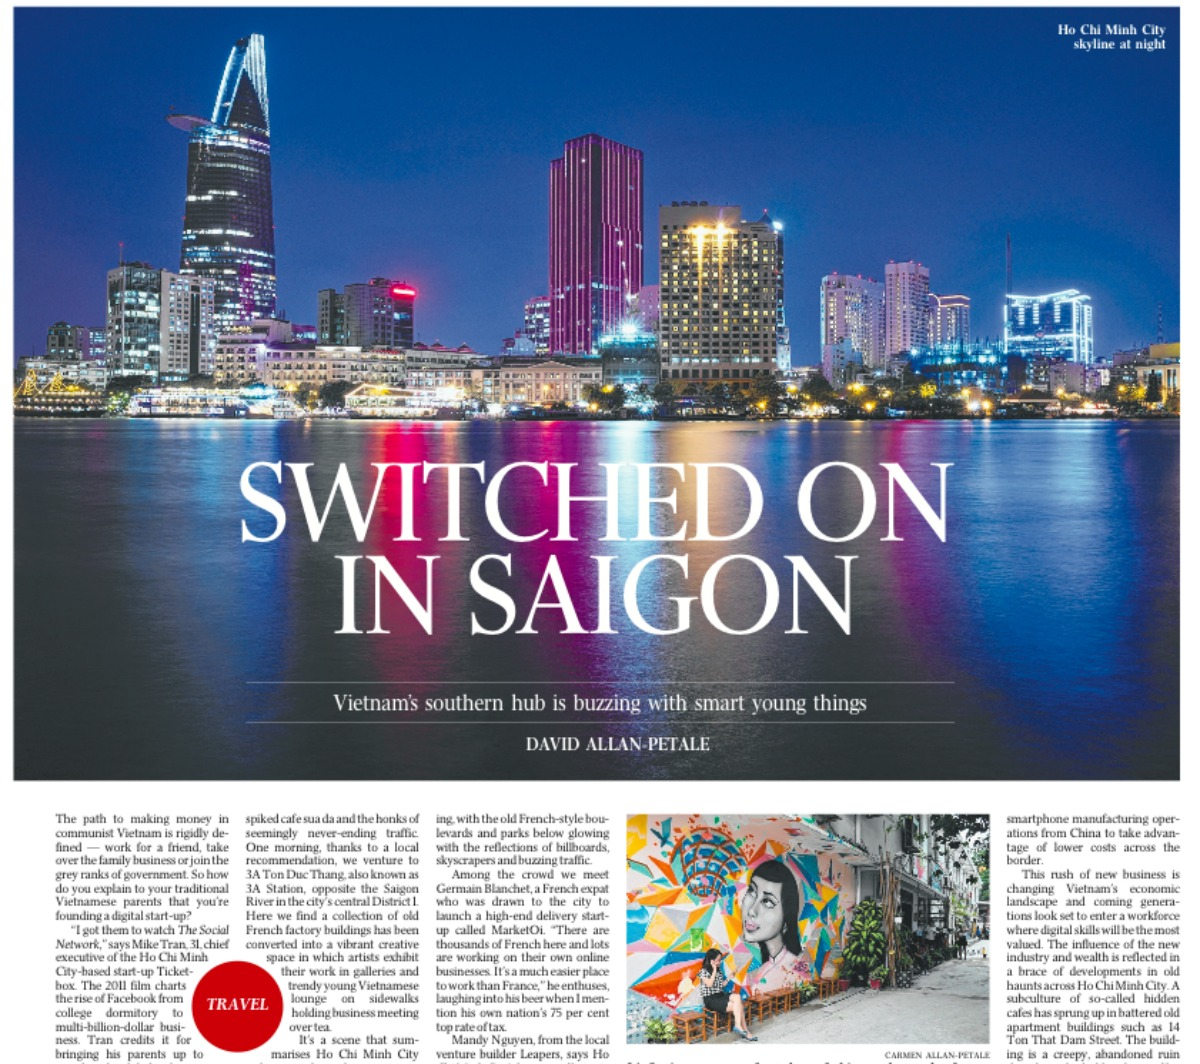 The Australian - Switched On In Saigon - Double-Barrelled Travel